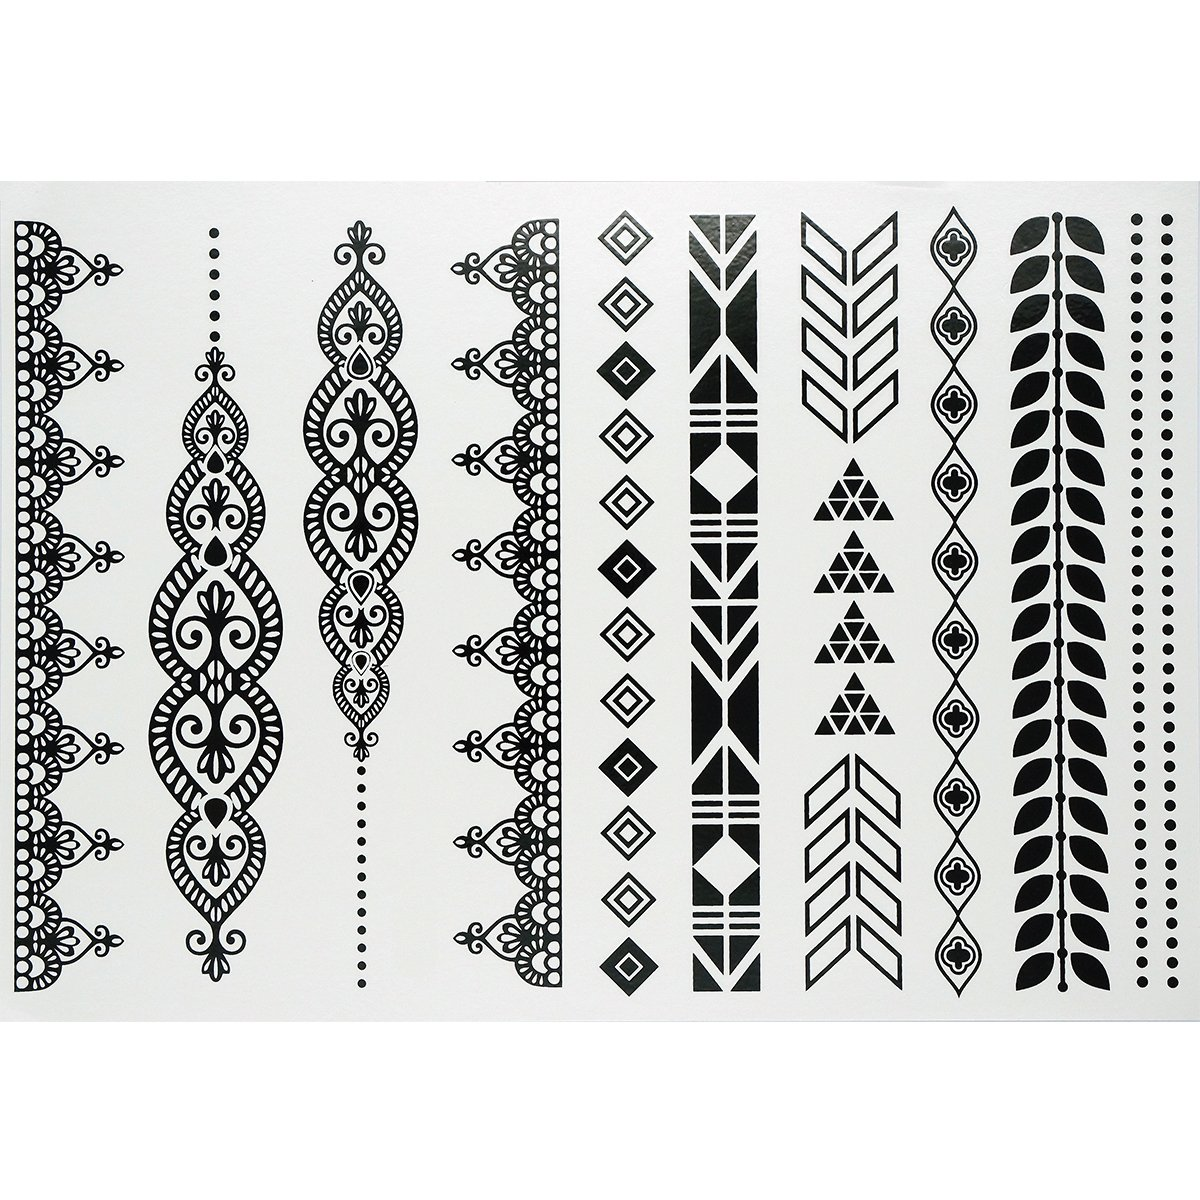 GIFT!!Tastto 6 Sheets Henna Body Paints Temporary Tattoos Black Lace Stickers for Girls and Women with GIFT by Tastto (Image #8)